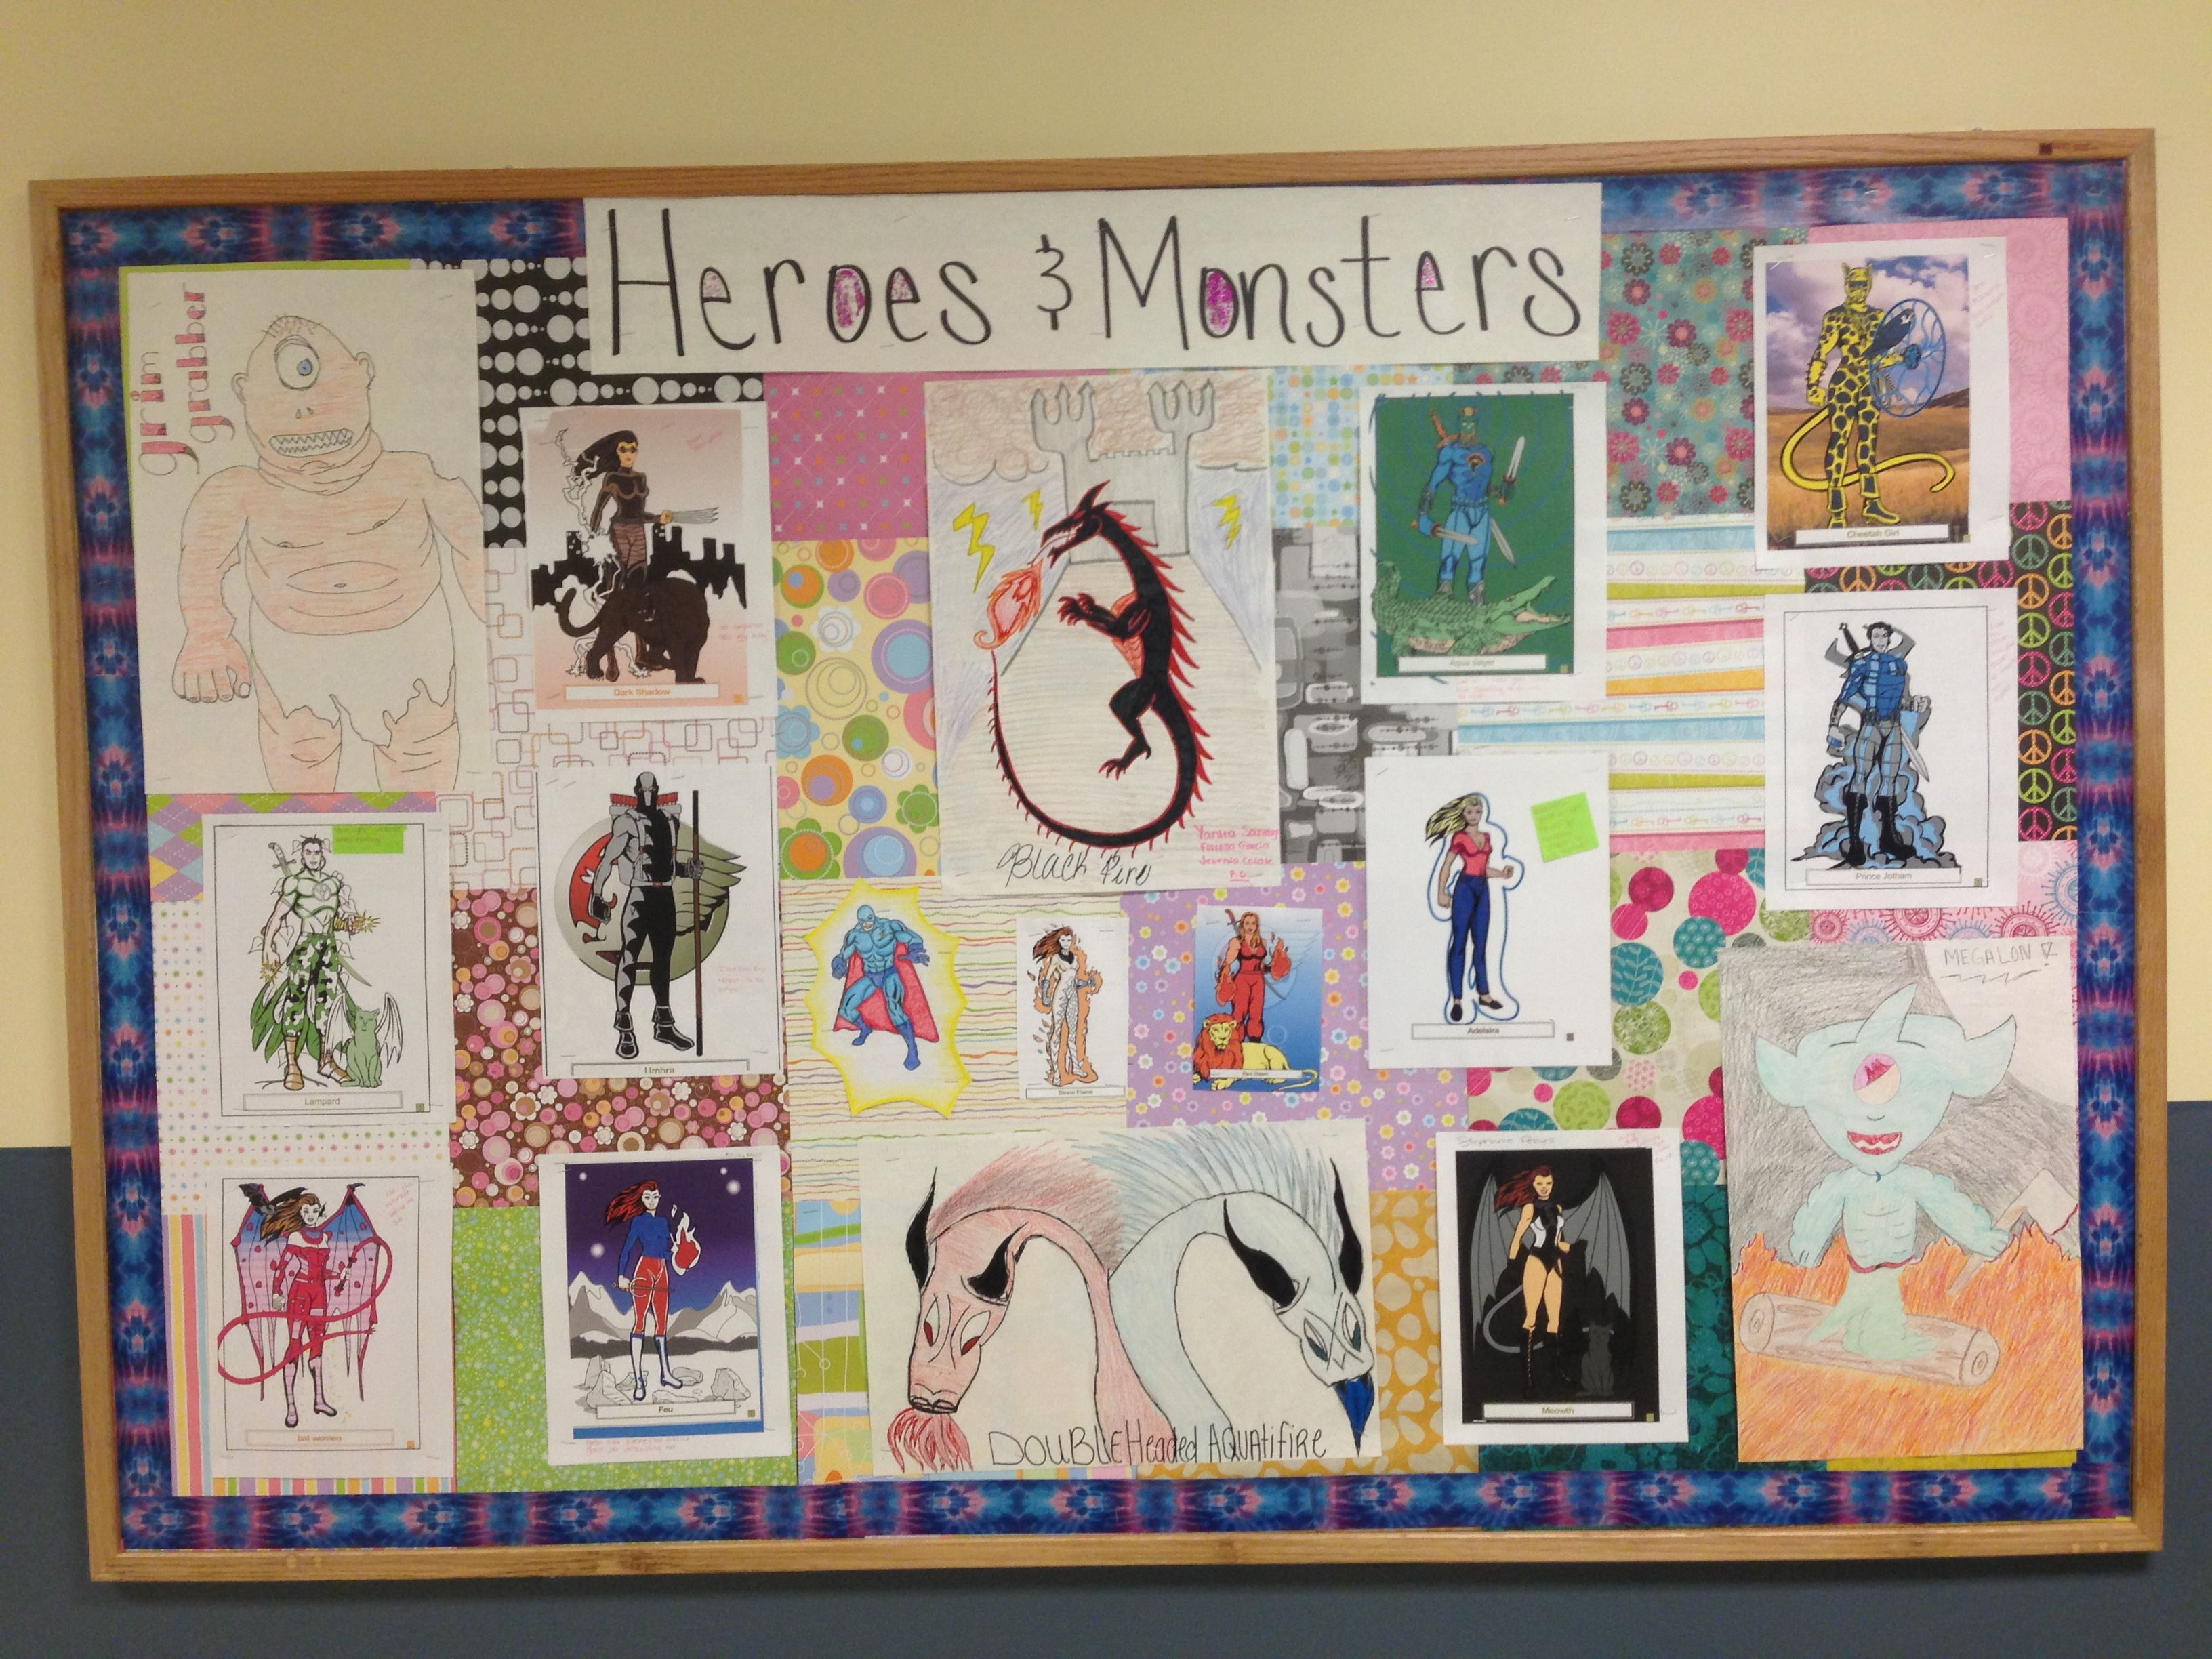 Beowulf Heroes And Monsters Project Udents Had To